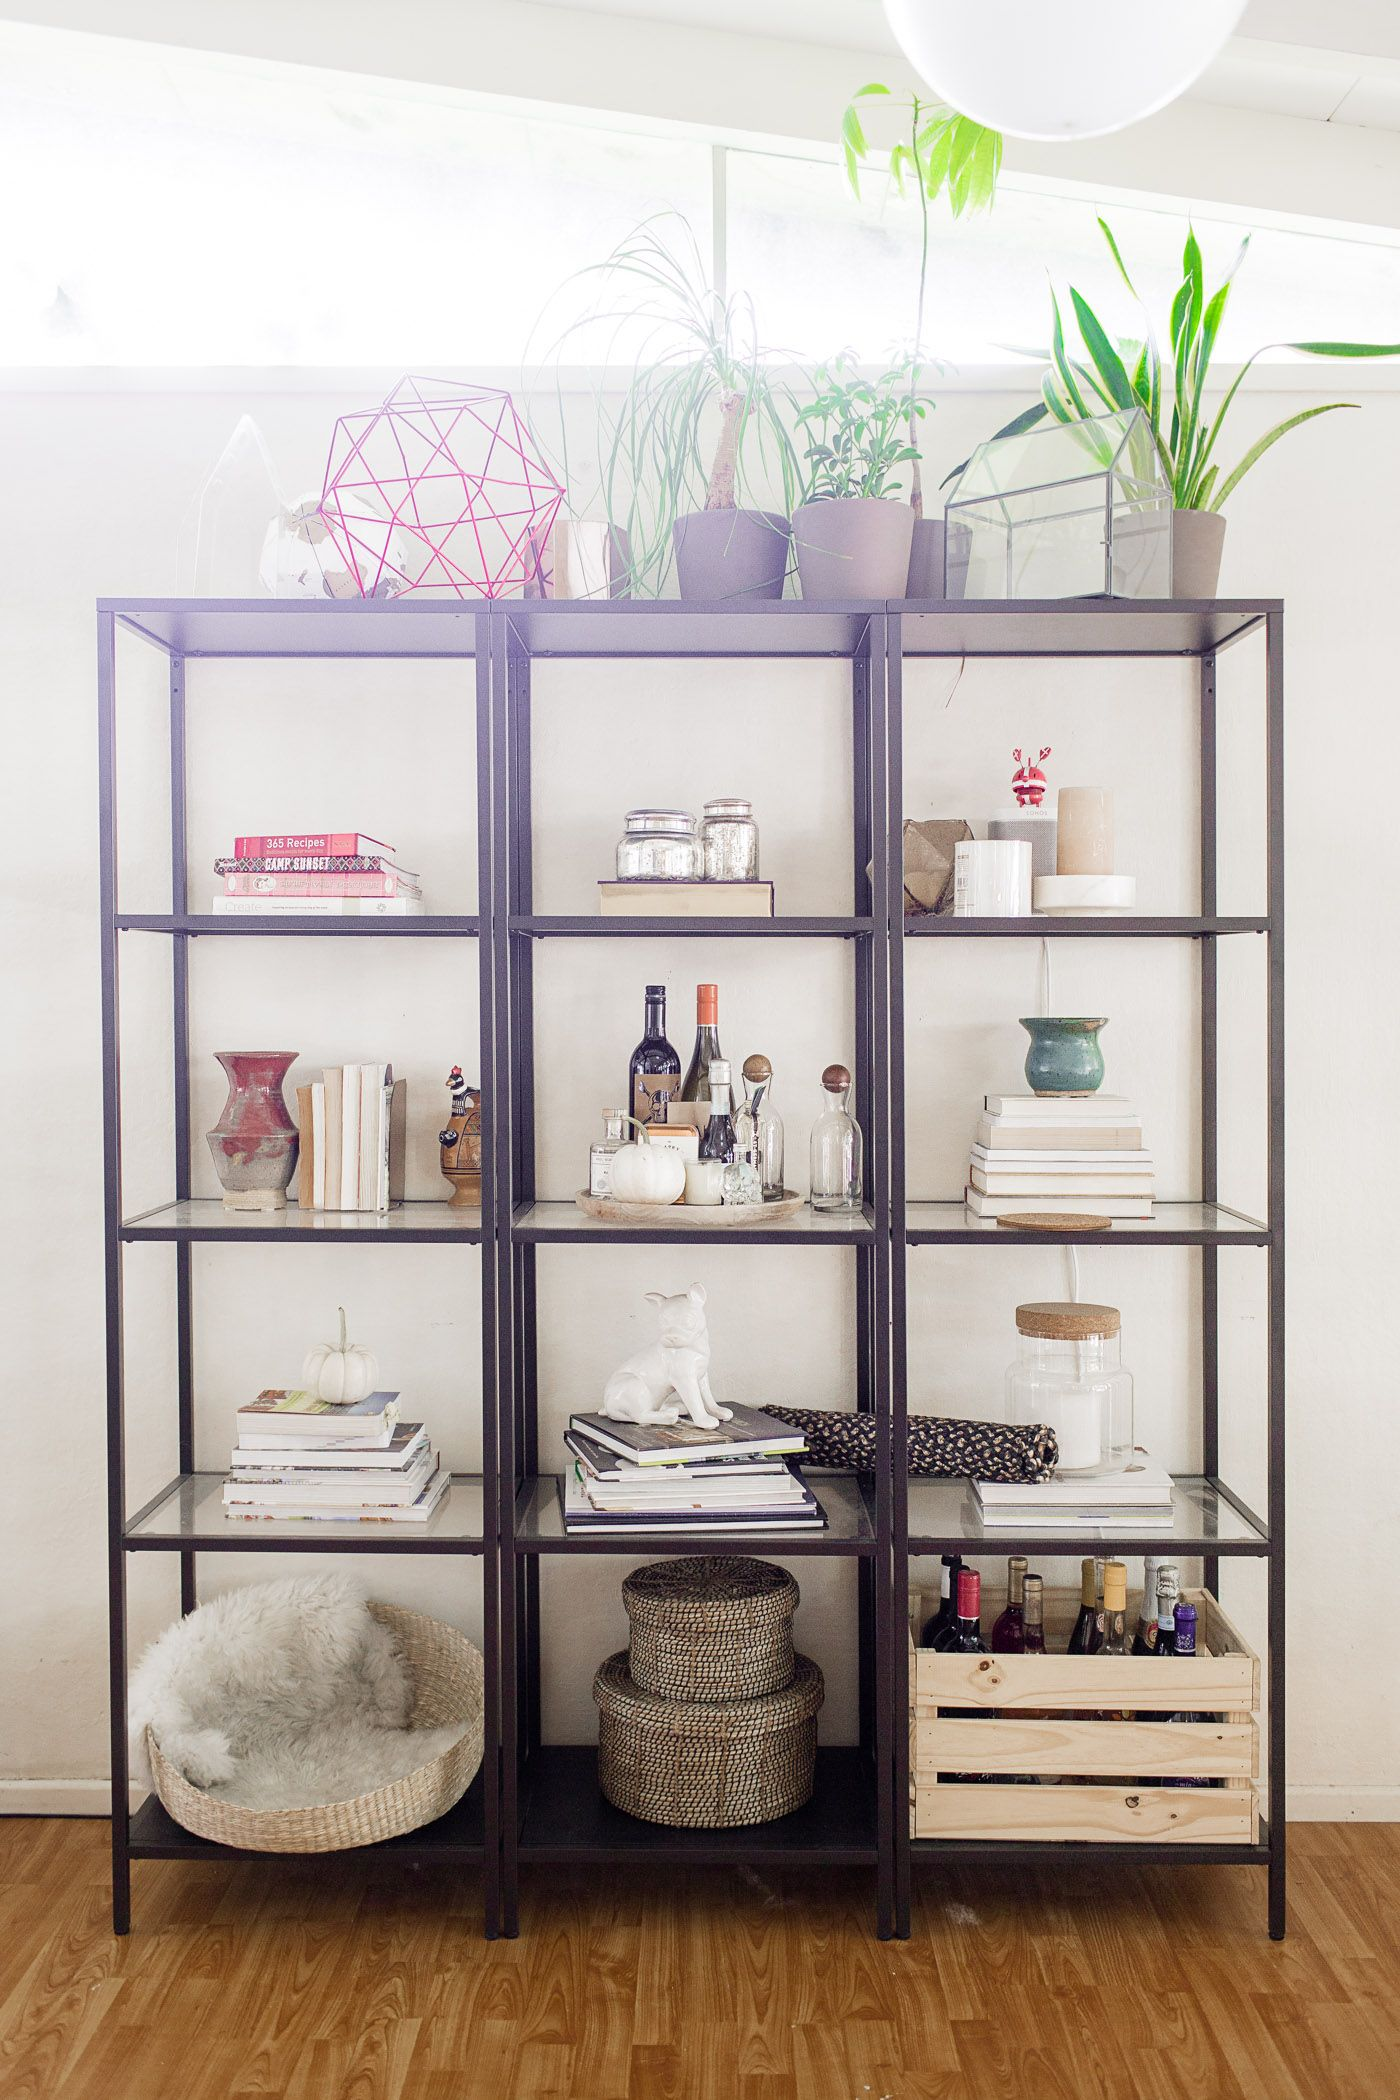 easy steps to style a shelf the before featuring my ikea vittsj shelves hearth home. Black Bedroom Furniture Sets. Home Design Ideas